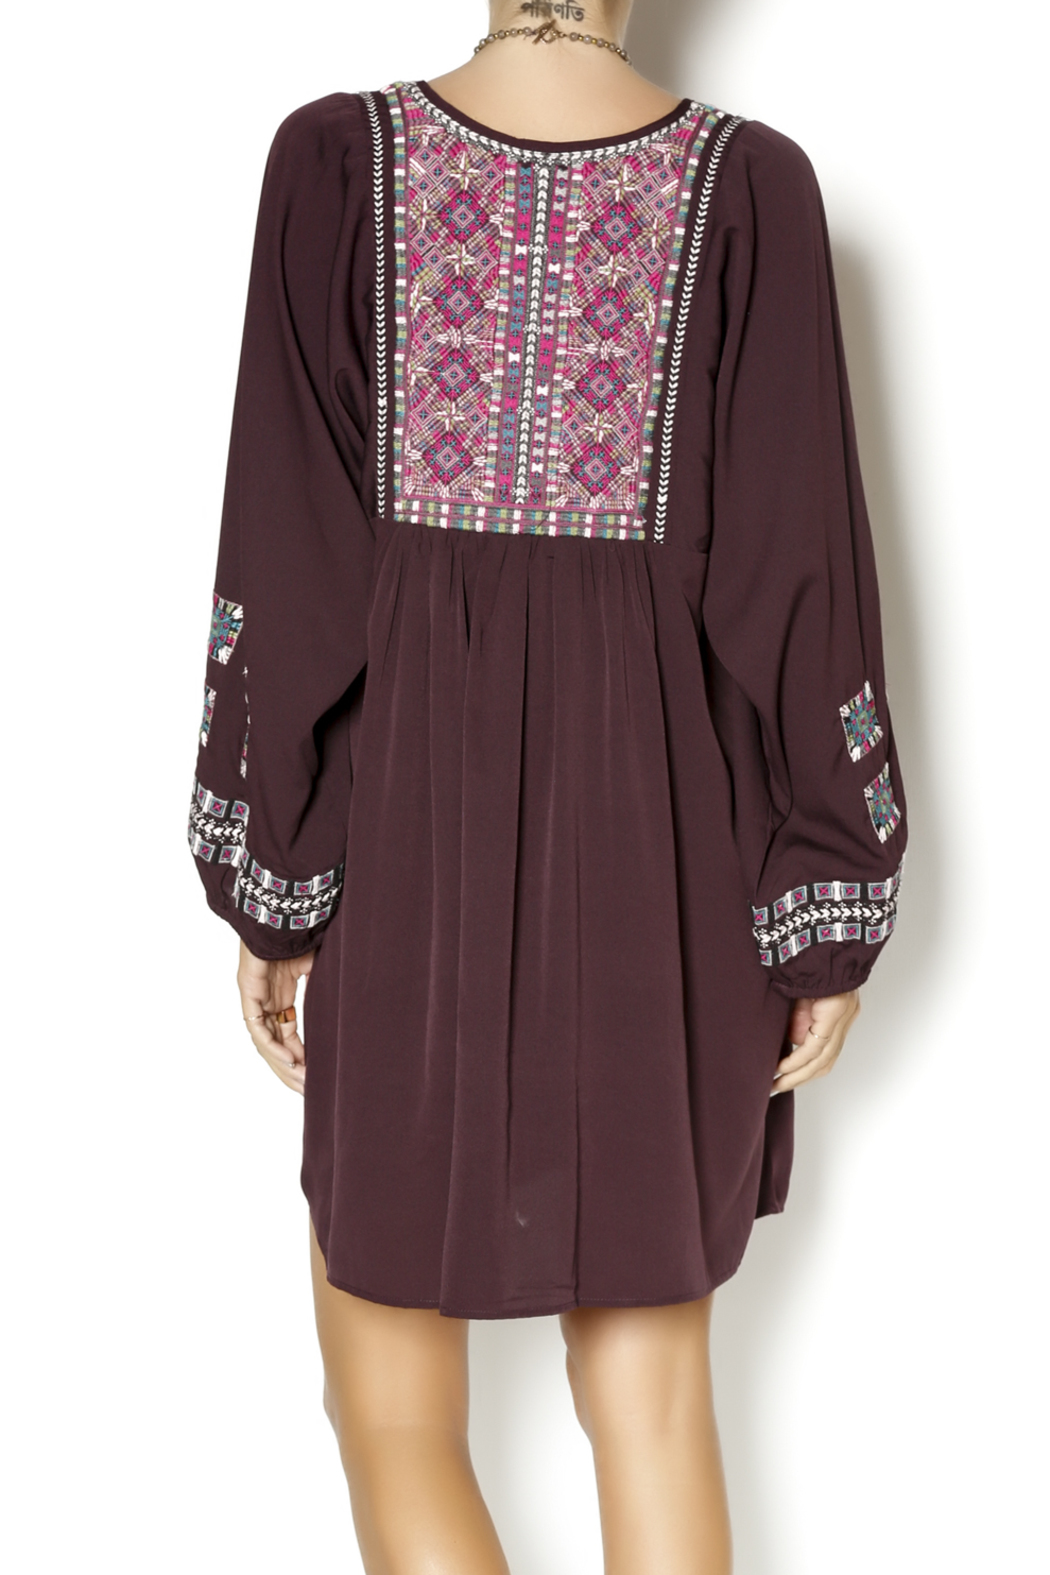 Kyla seo embroidered dress from boca raton by styles